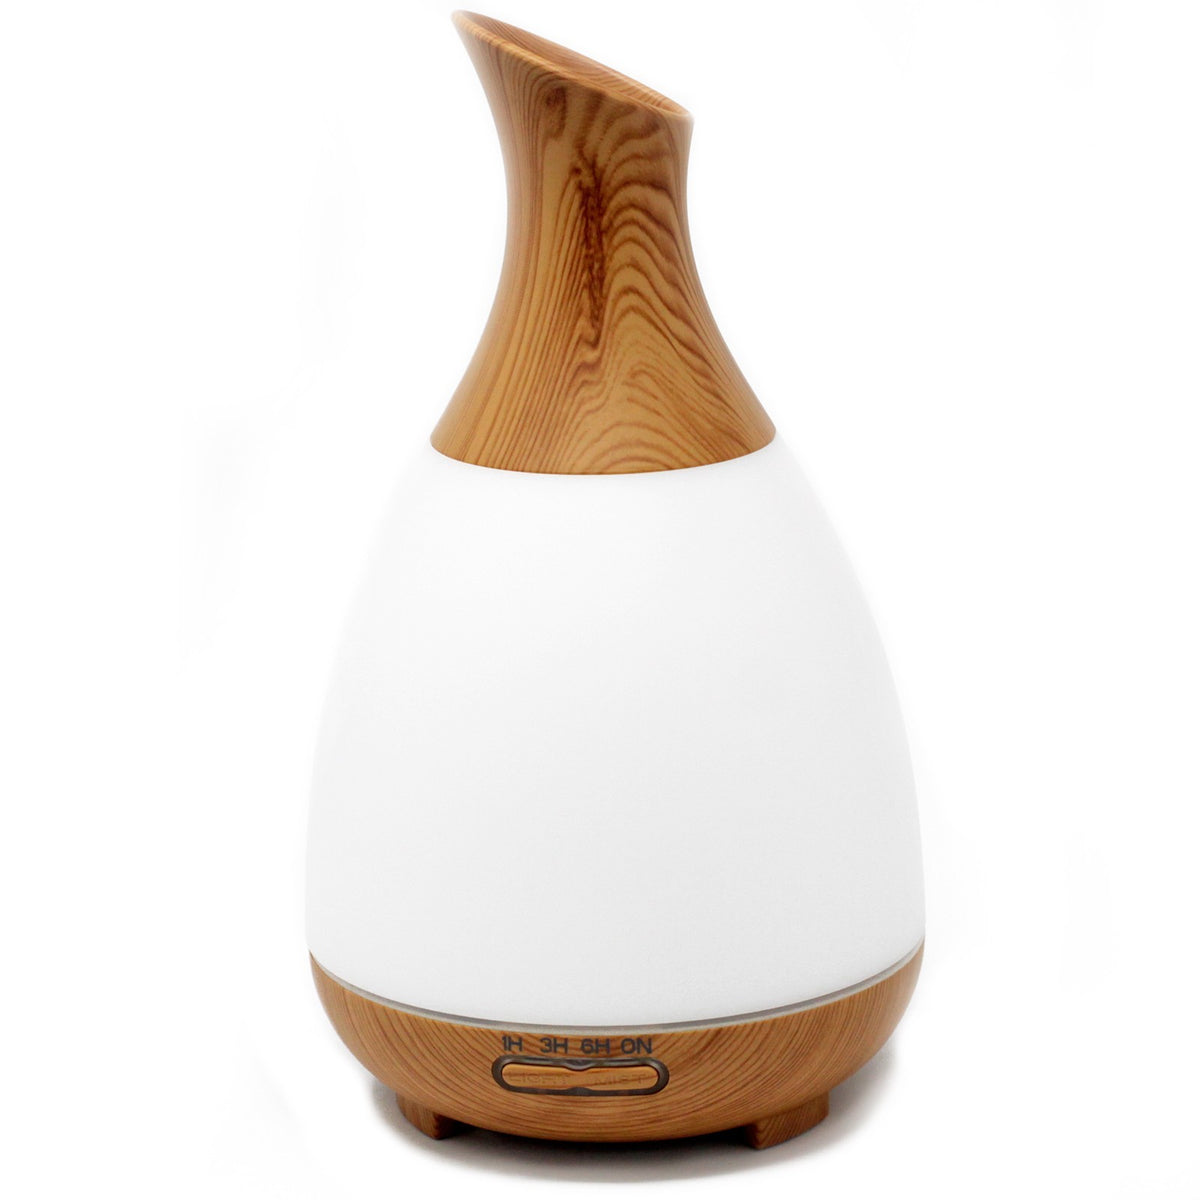 Aromatherapy Diffuser - Funnel Wave Atomiser - Seashore No4